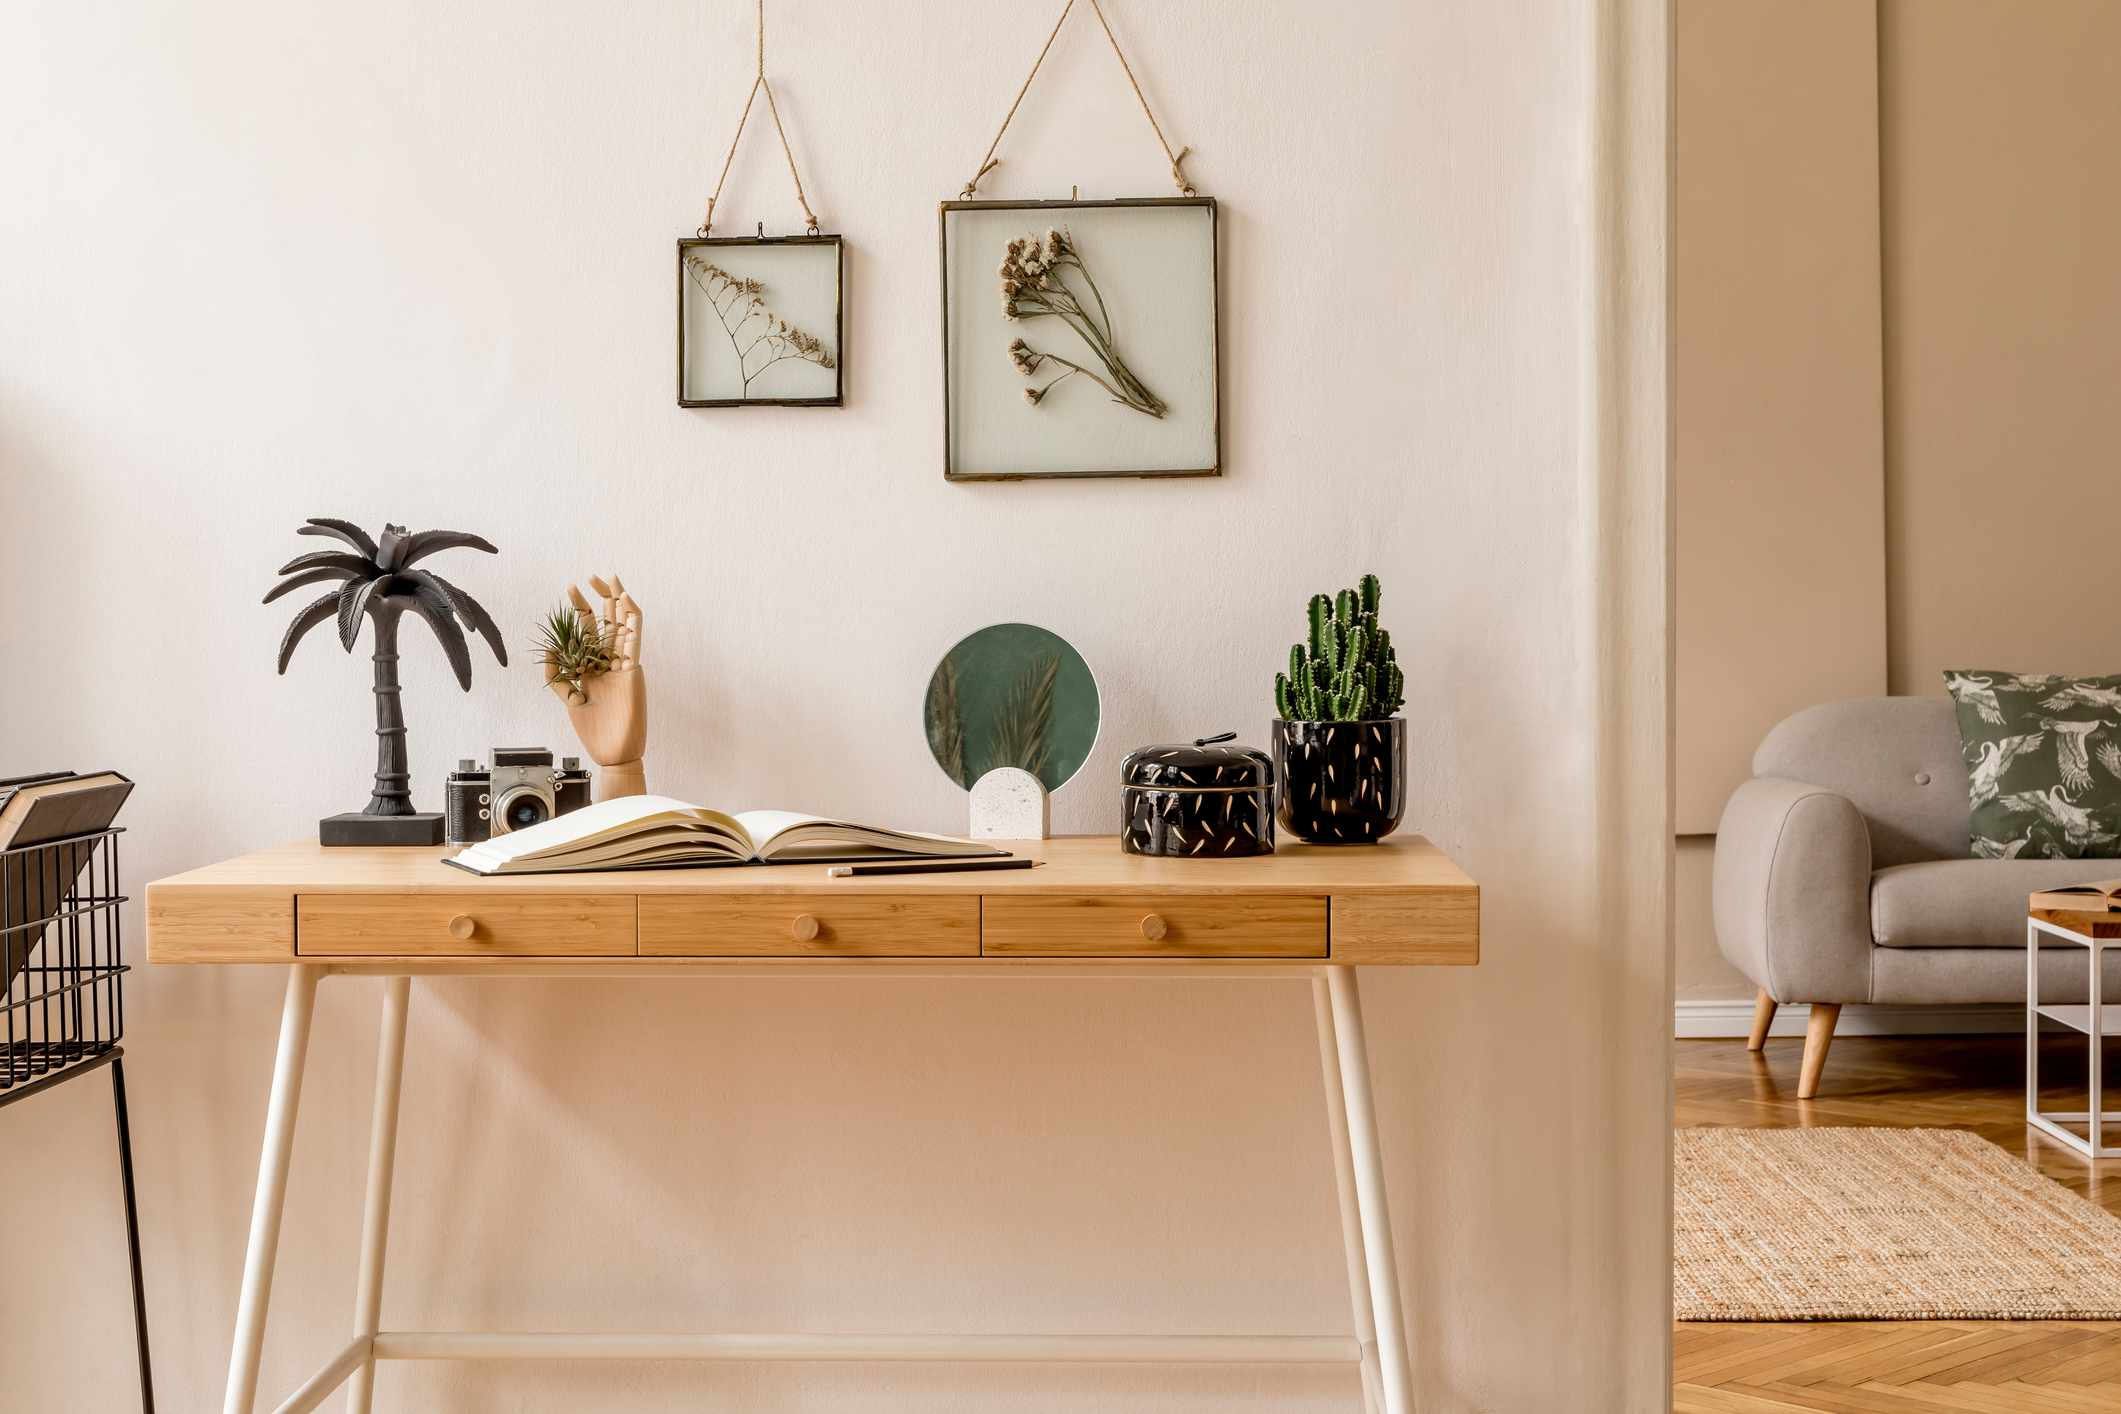 Interior design of scandinavian open space with mock up photo frames, wooden desk, gray sofa, cacti, books office and personal accessories. Stylish neutral home staging. Beige walls. Template.